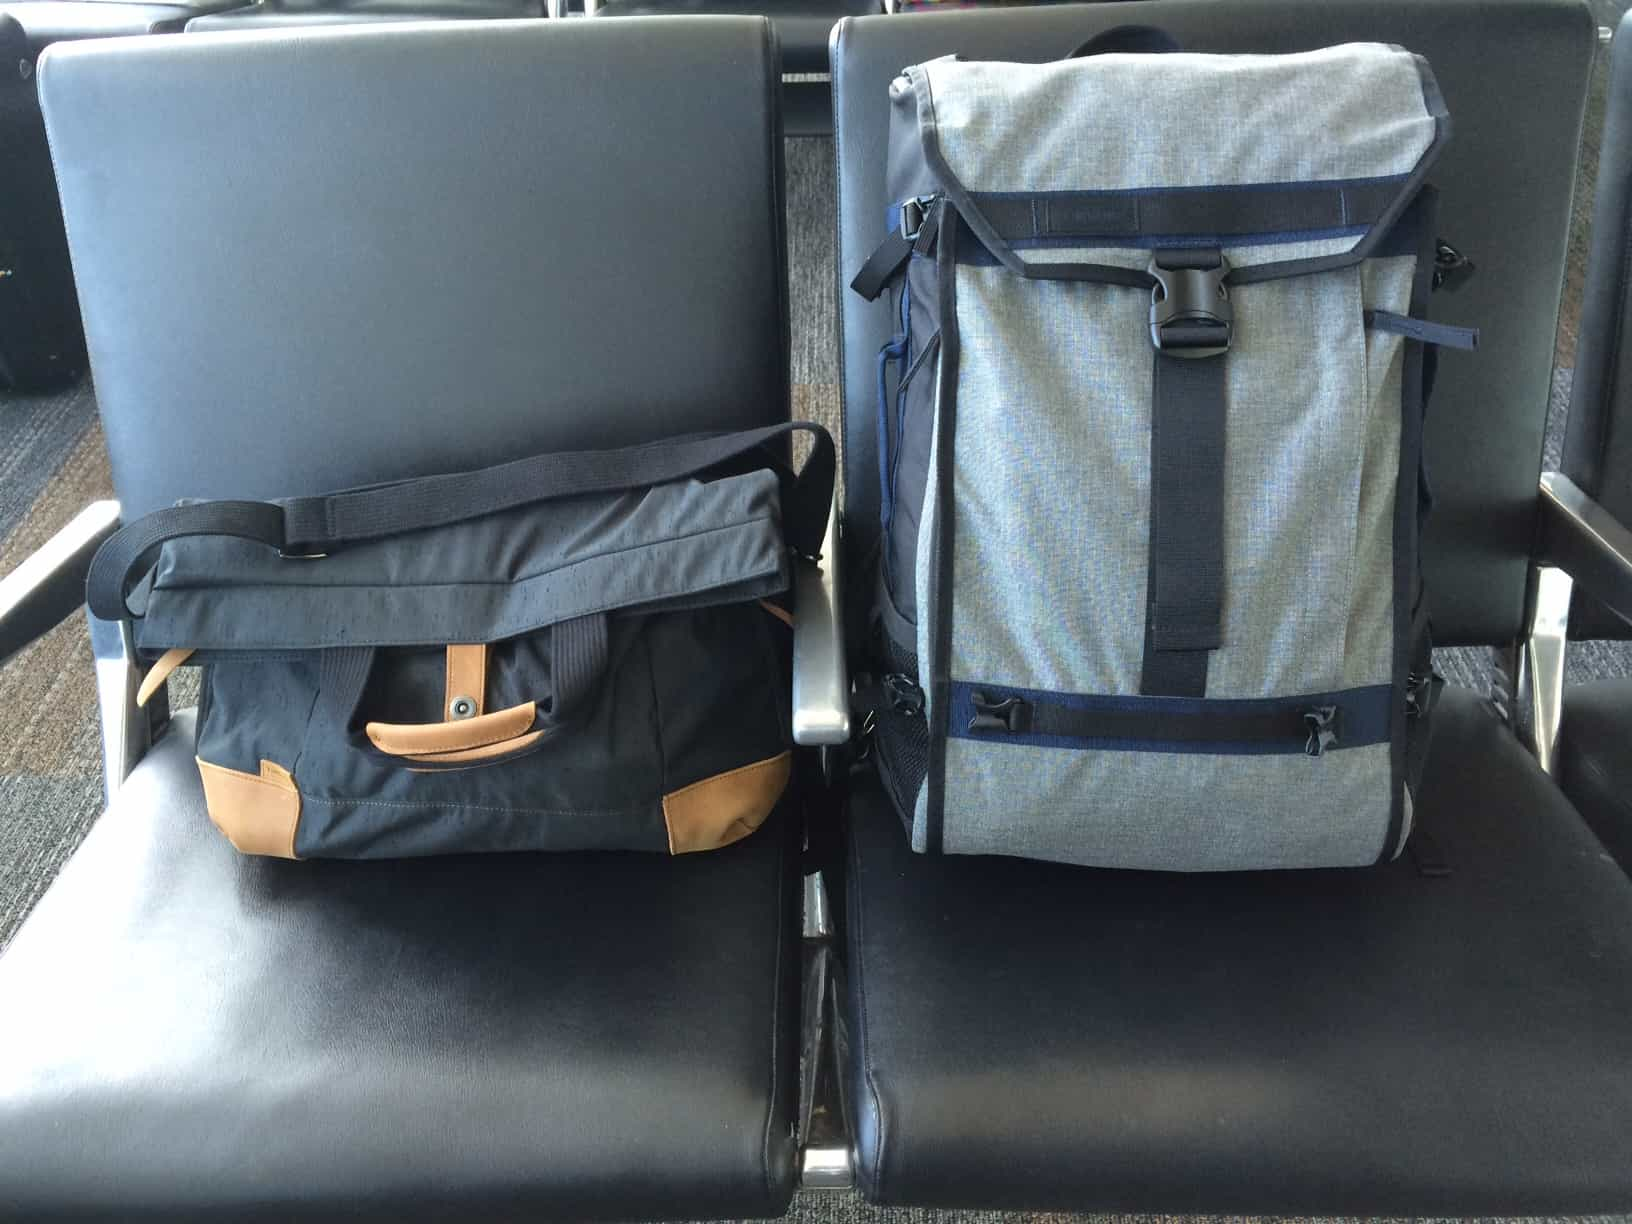 Timbuk2 Aviator backpack and Monterey messenger bag at airport